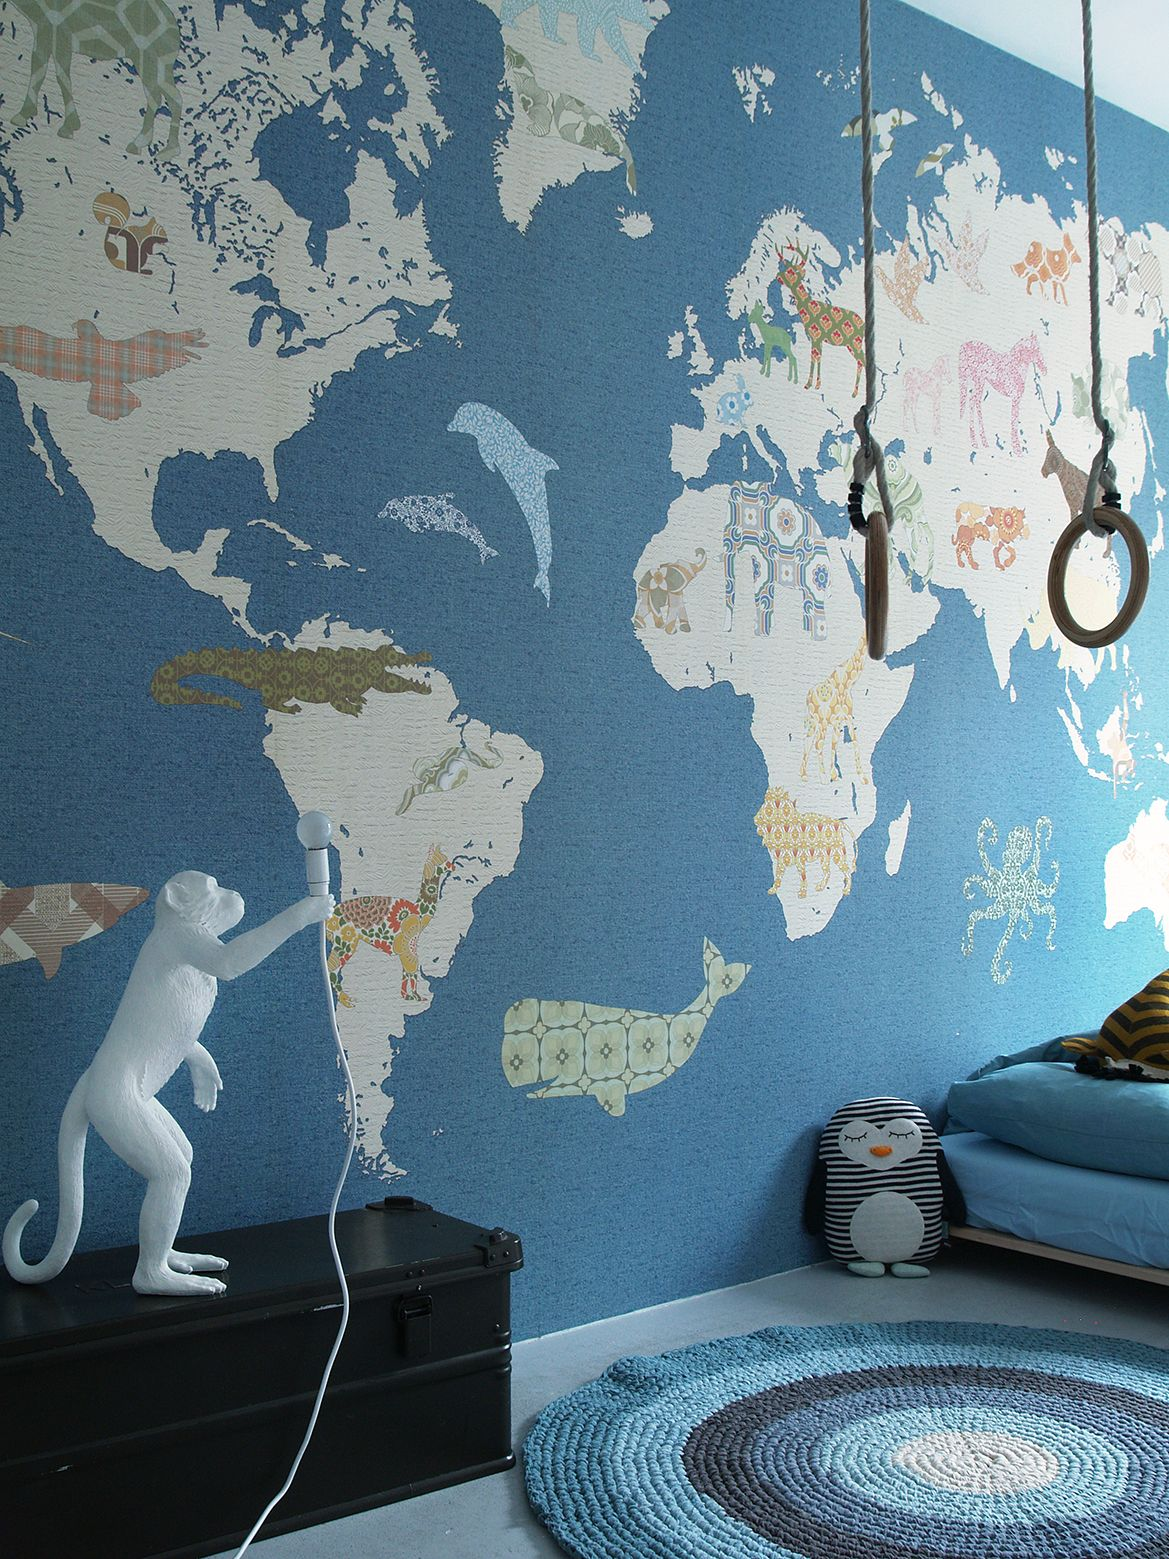 the wall sticker company removable world map wallpaper what s amazing wall print collection by inkeheiland world map